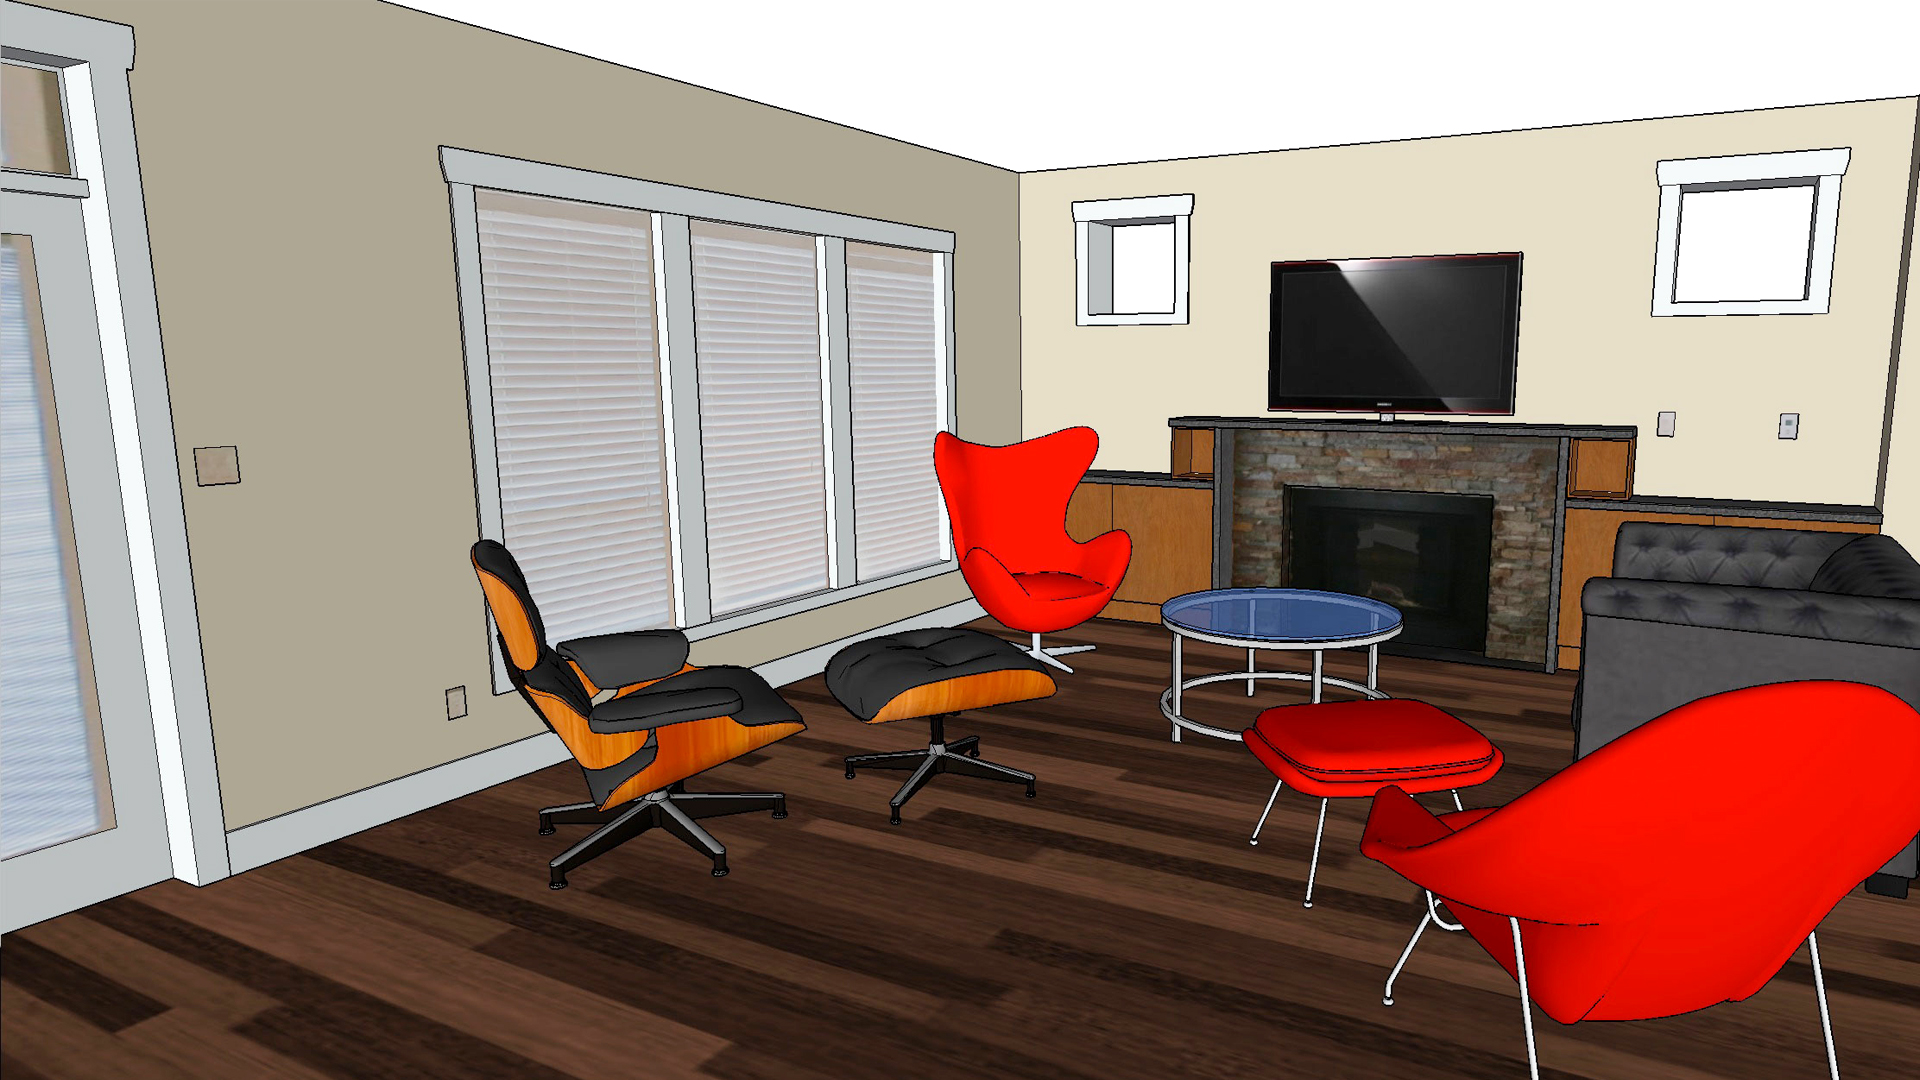 SketchUp Modeling from Photos